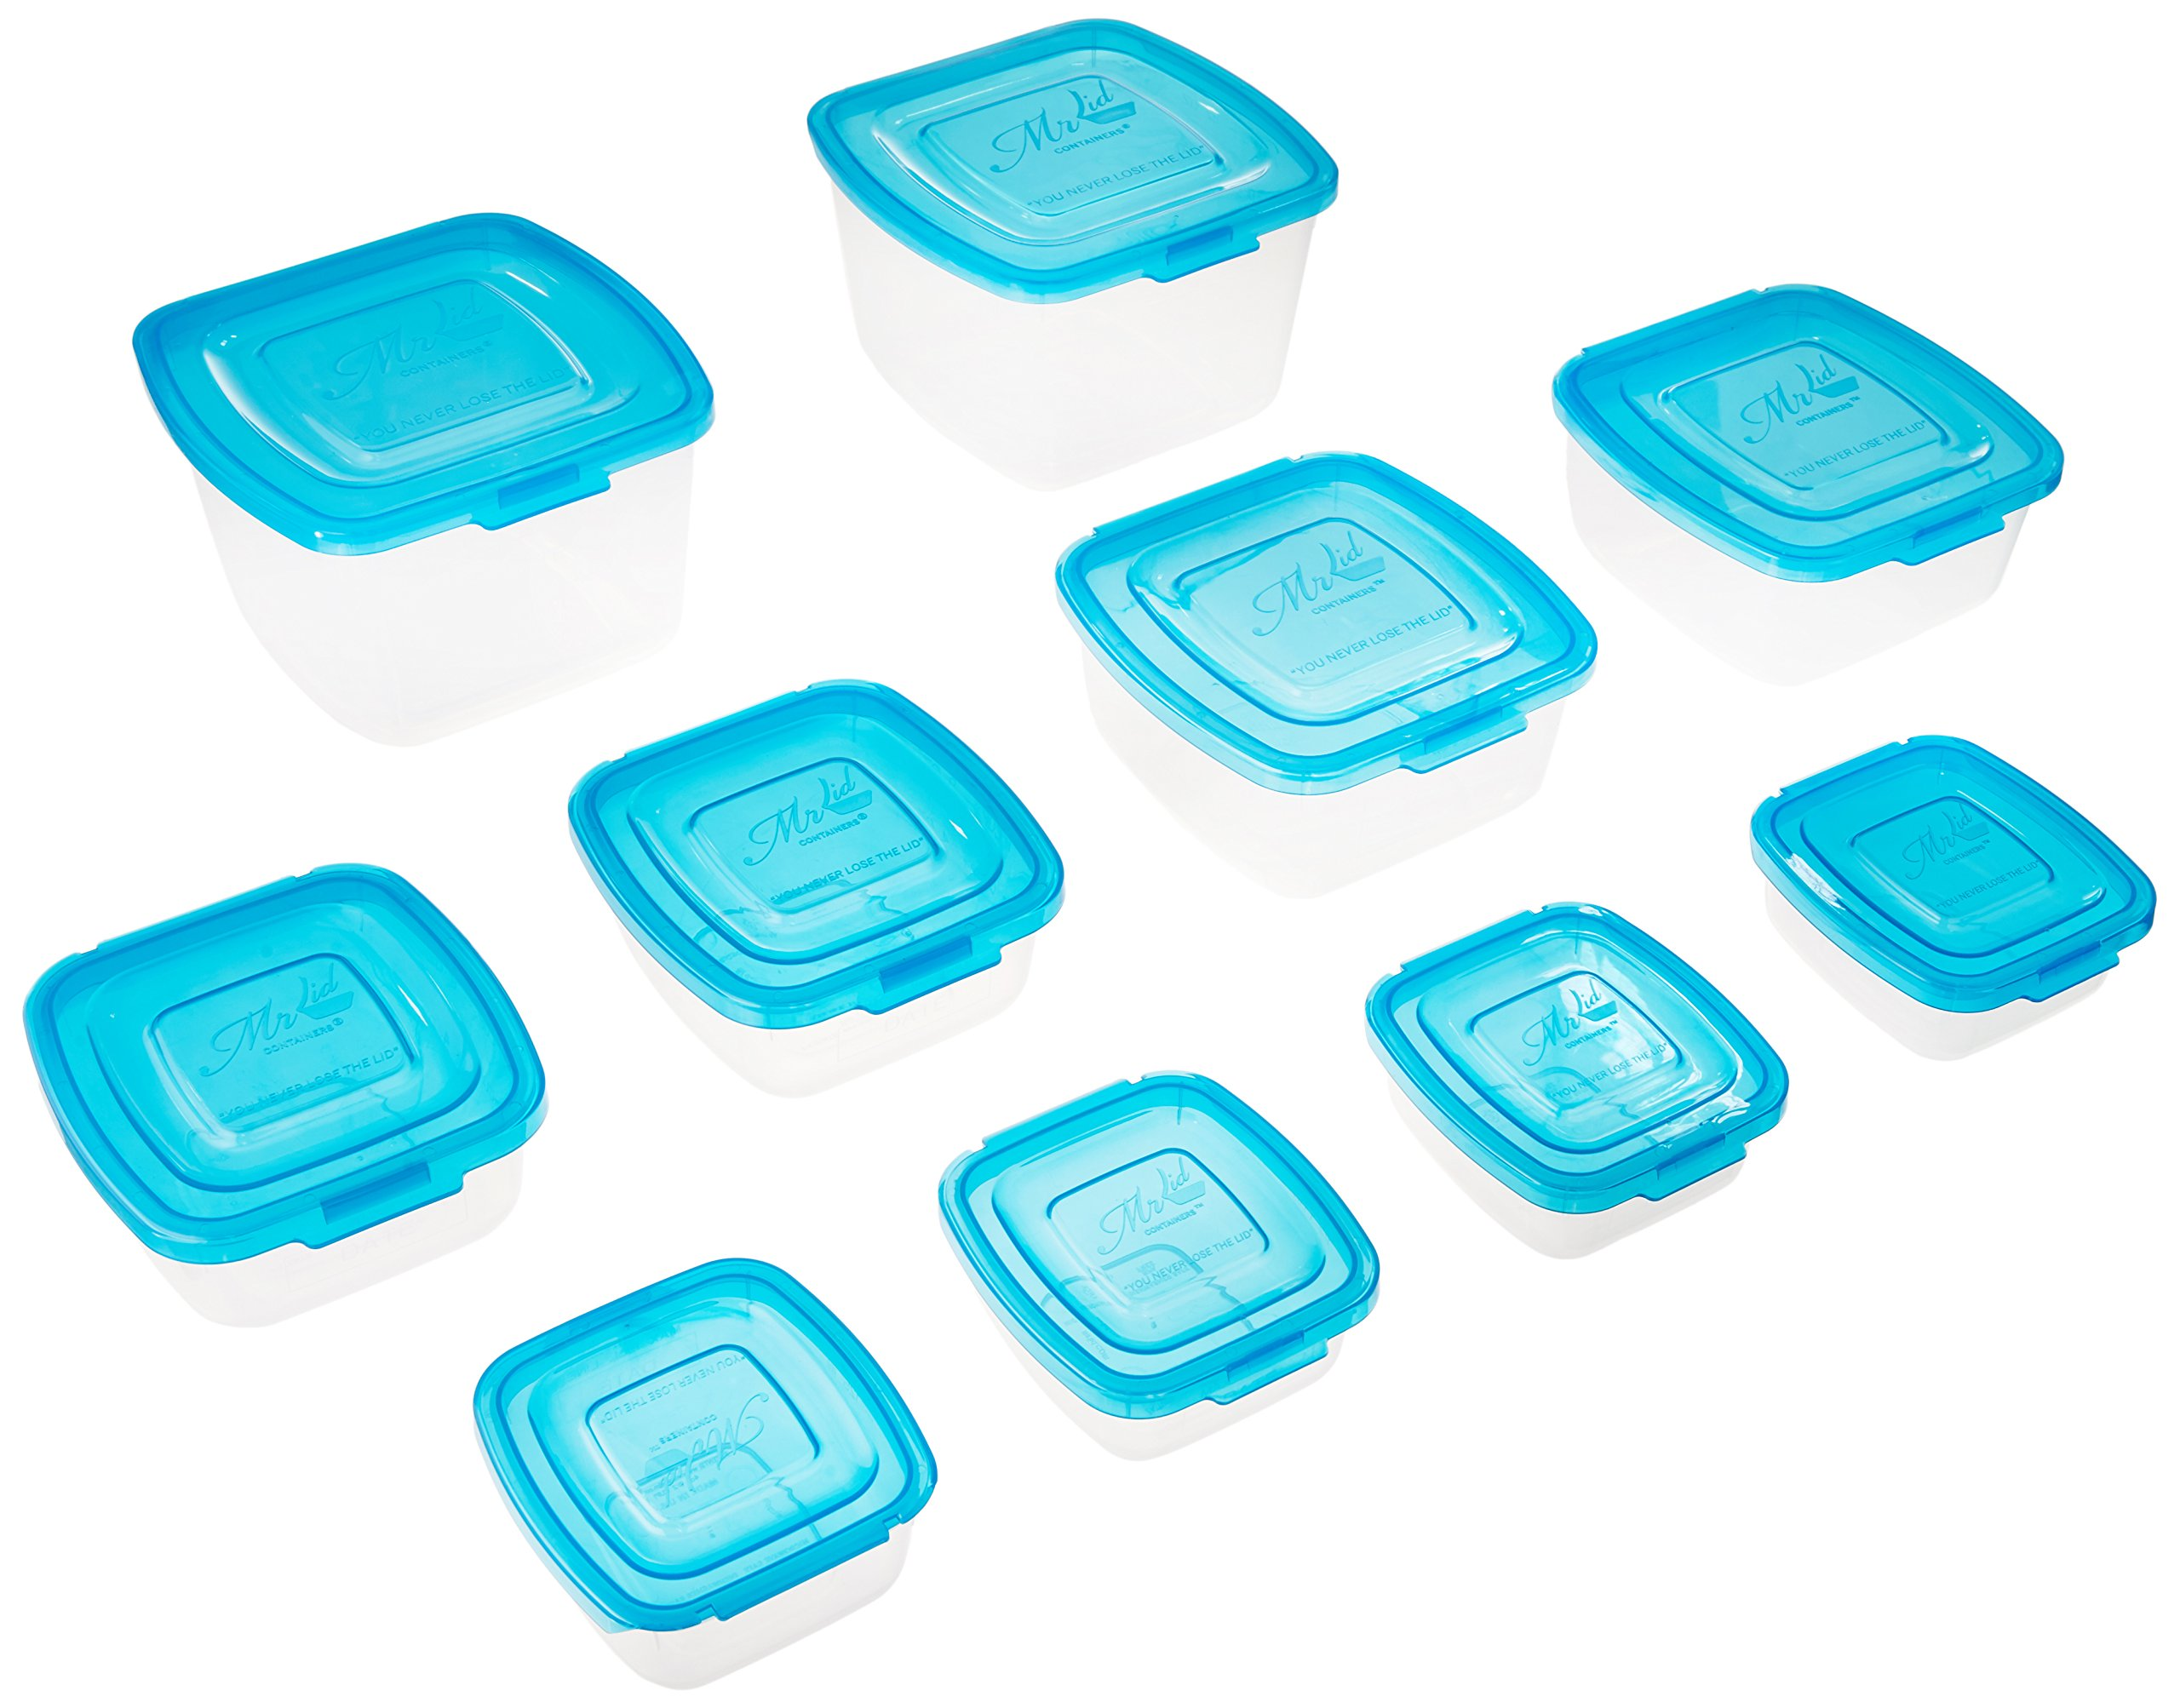 Norman Direct 501 10 Piece Mr. Lid Containers